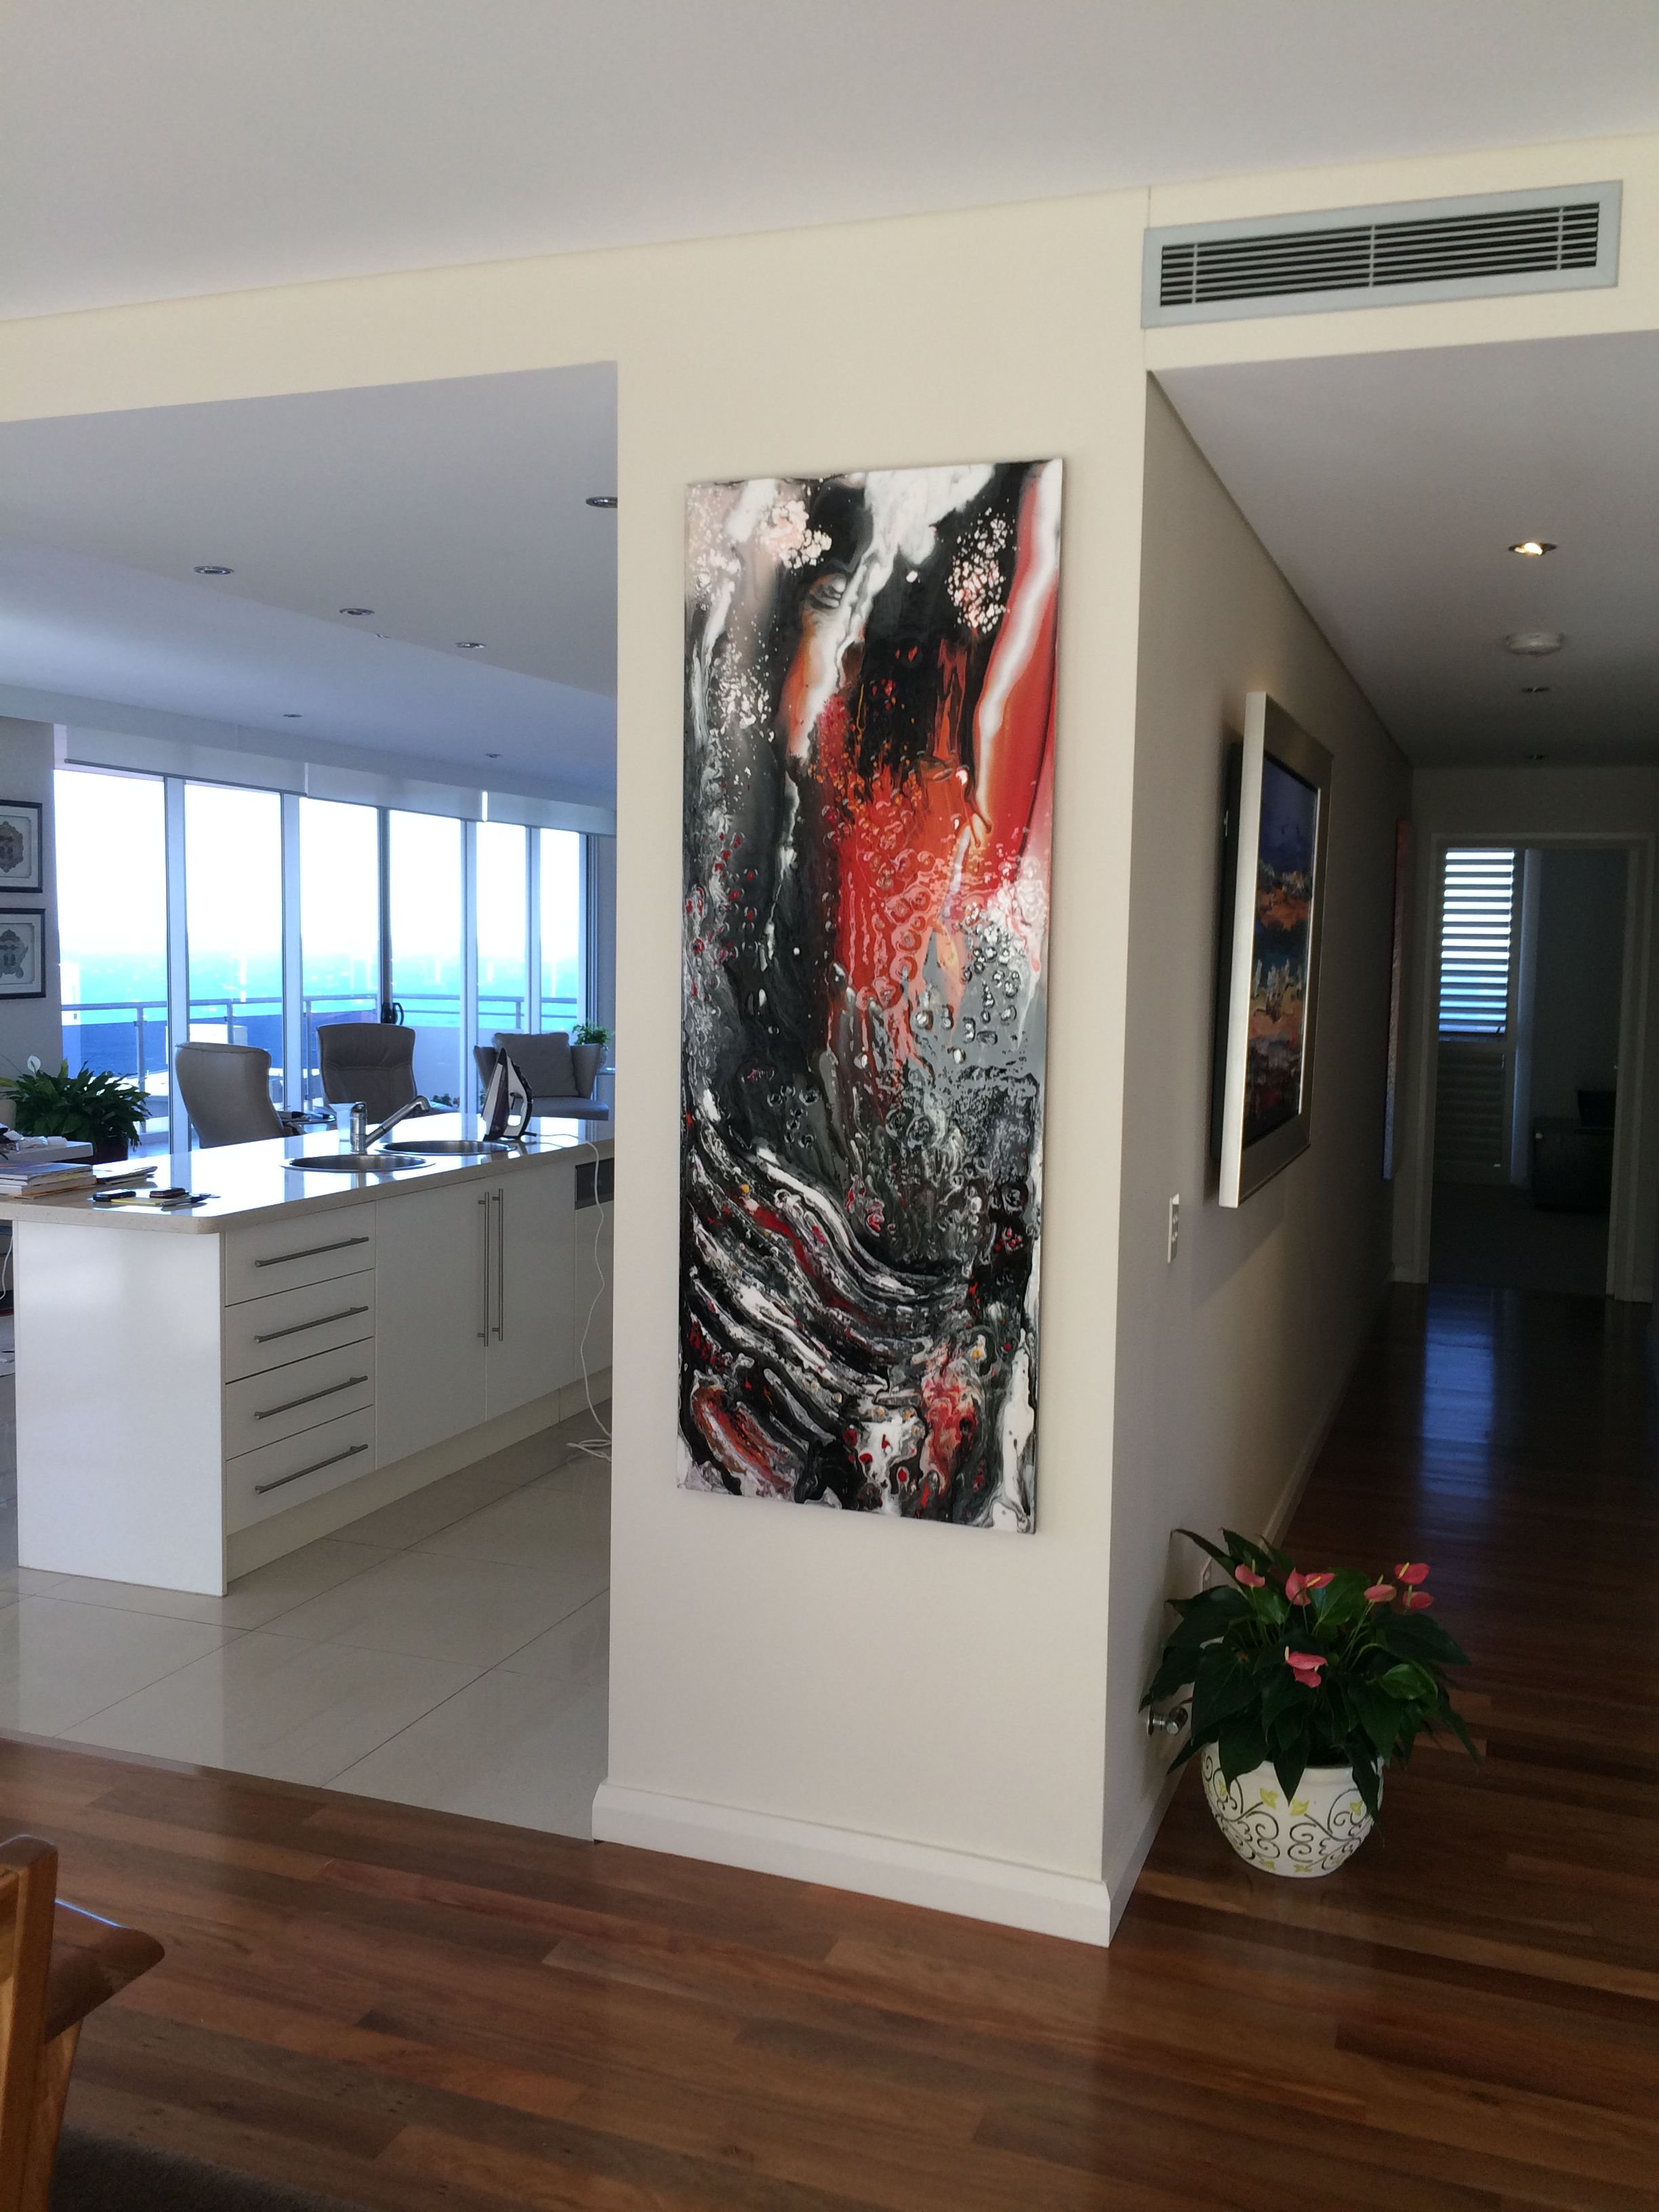 160cm x 60cm  #abstract #artwork created by #artist #Glenn #Farquhar owner of #ArtFusion #studio #Gallery www.artfusionproductions.com.au #Learn-how-to-Paint #artlessons  buy #Interior-Design-Artworks